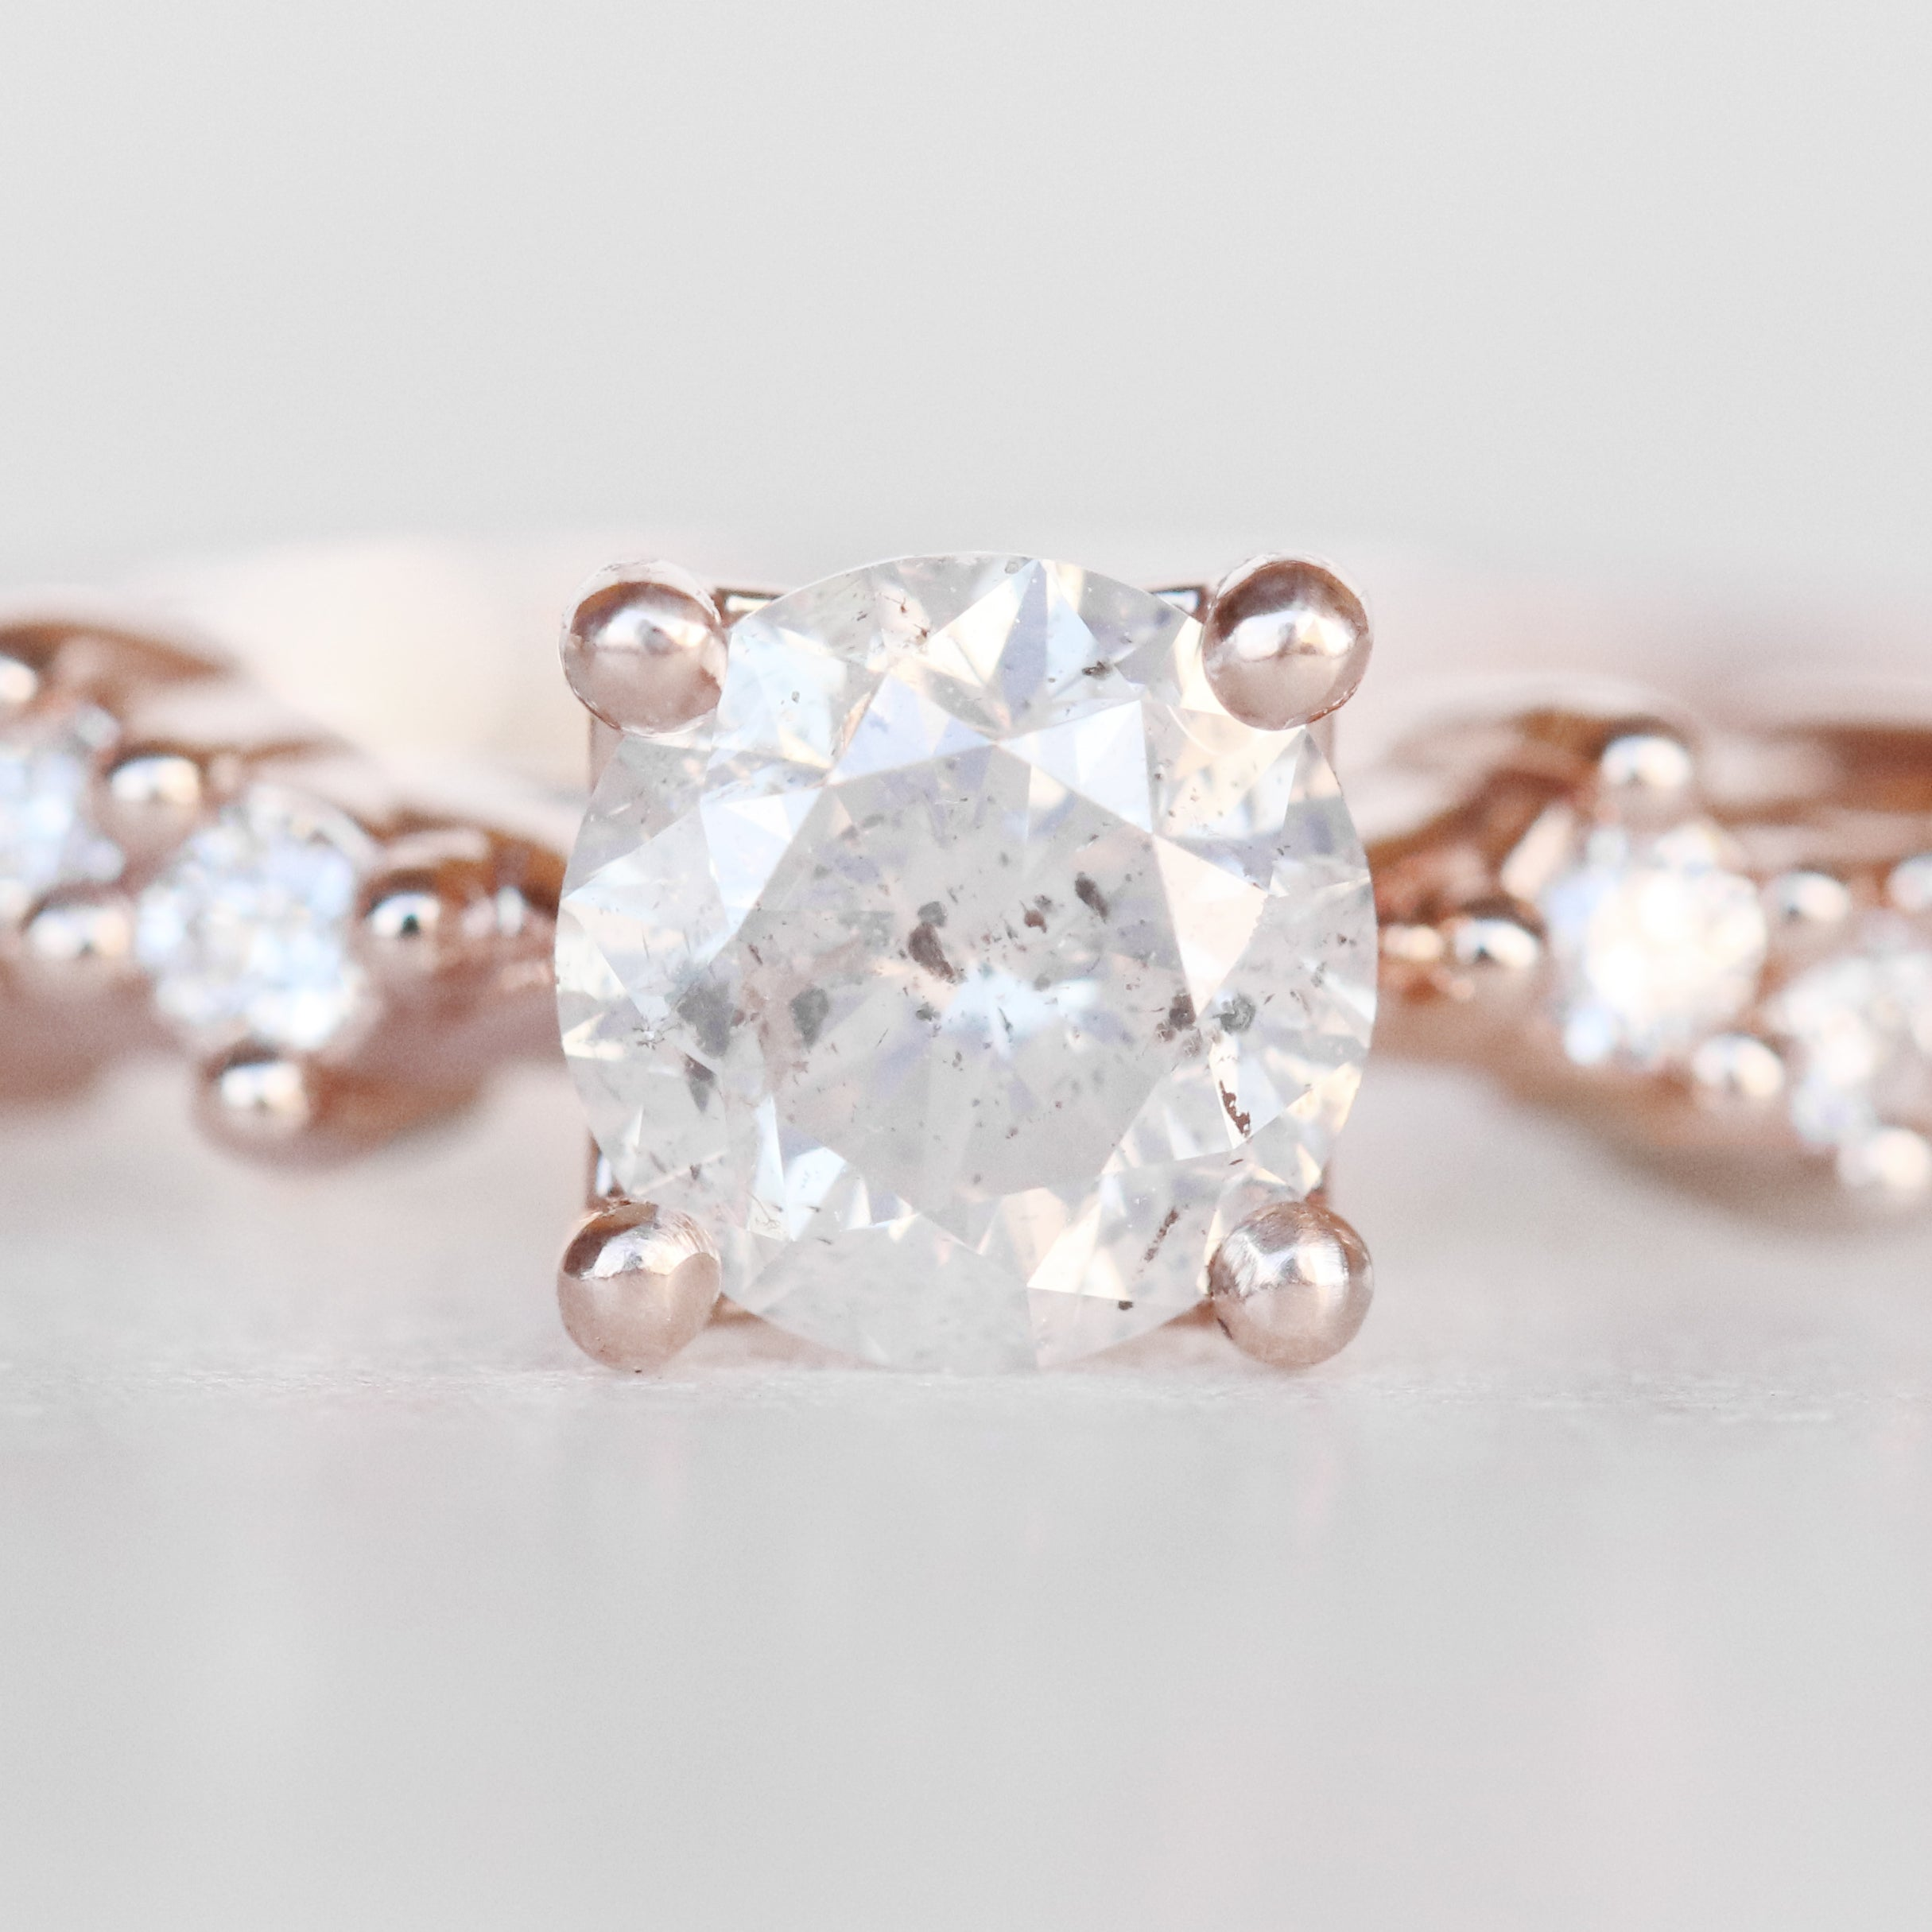 Zealan Ring with a .58 Carat Celestial Diamond in 14k Rose Gold - Ready to Size and Ship - Midwinter Co. Alternative Bridal Rings and Modern Fine Jewelry